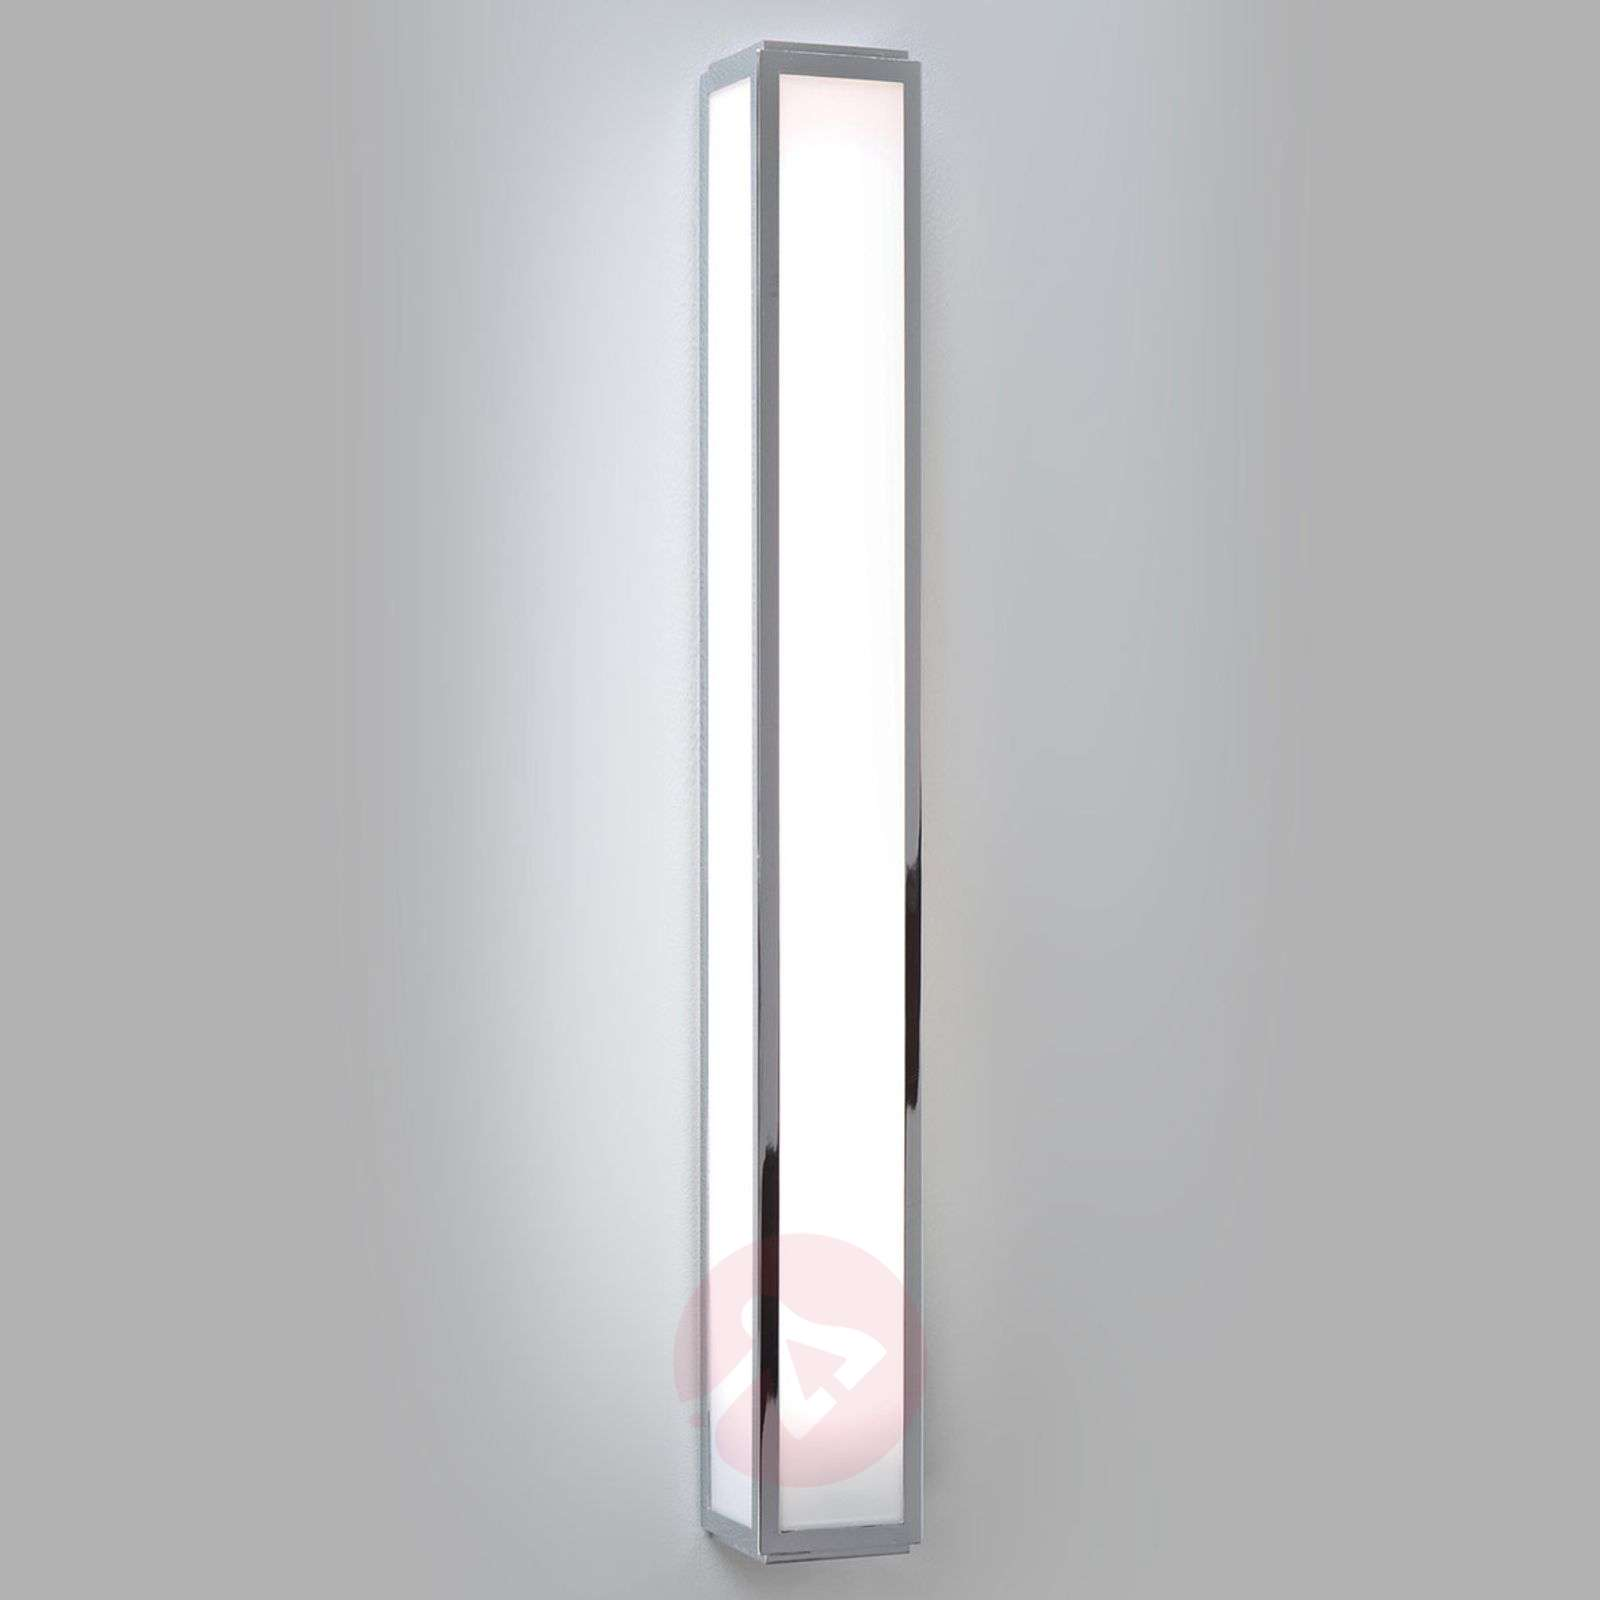 Mashiko 600 LED Wall Light Elongated-1020485-02